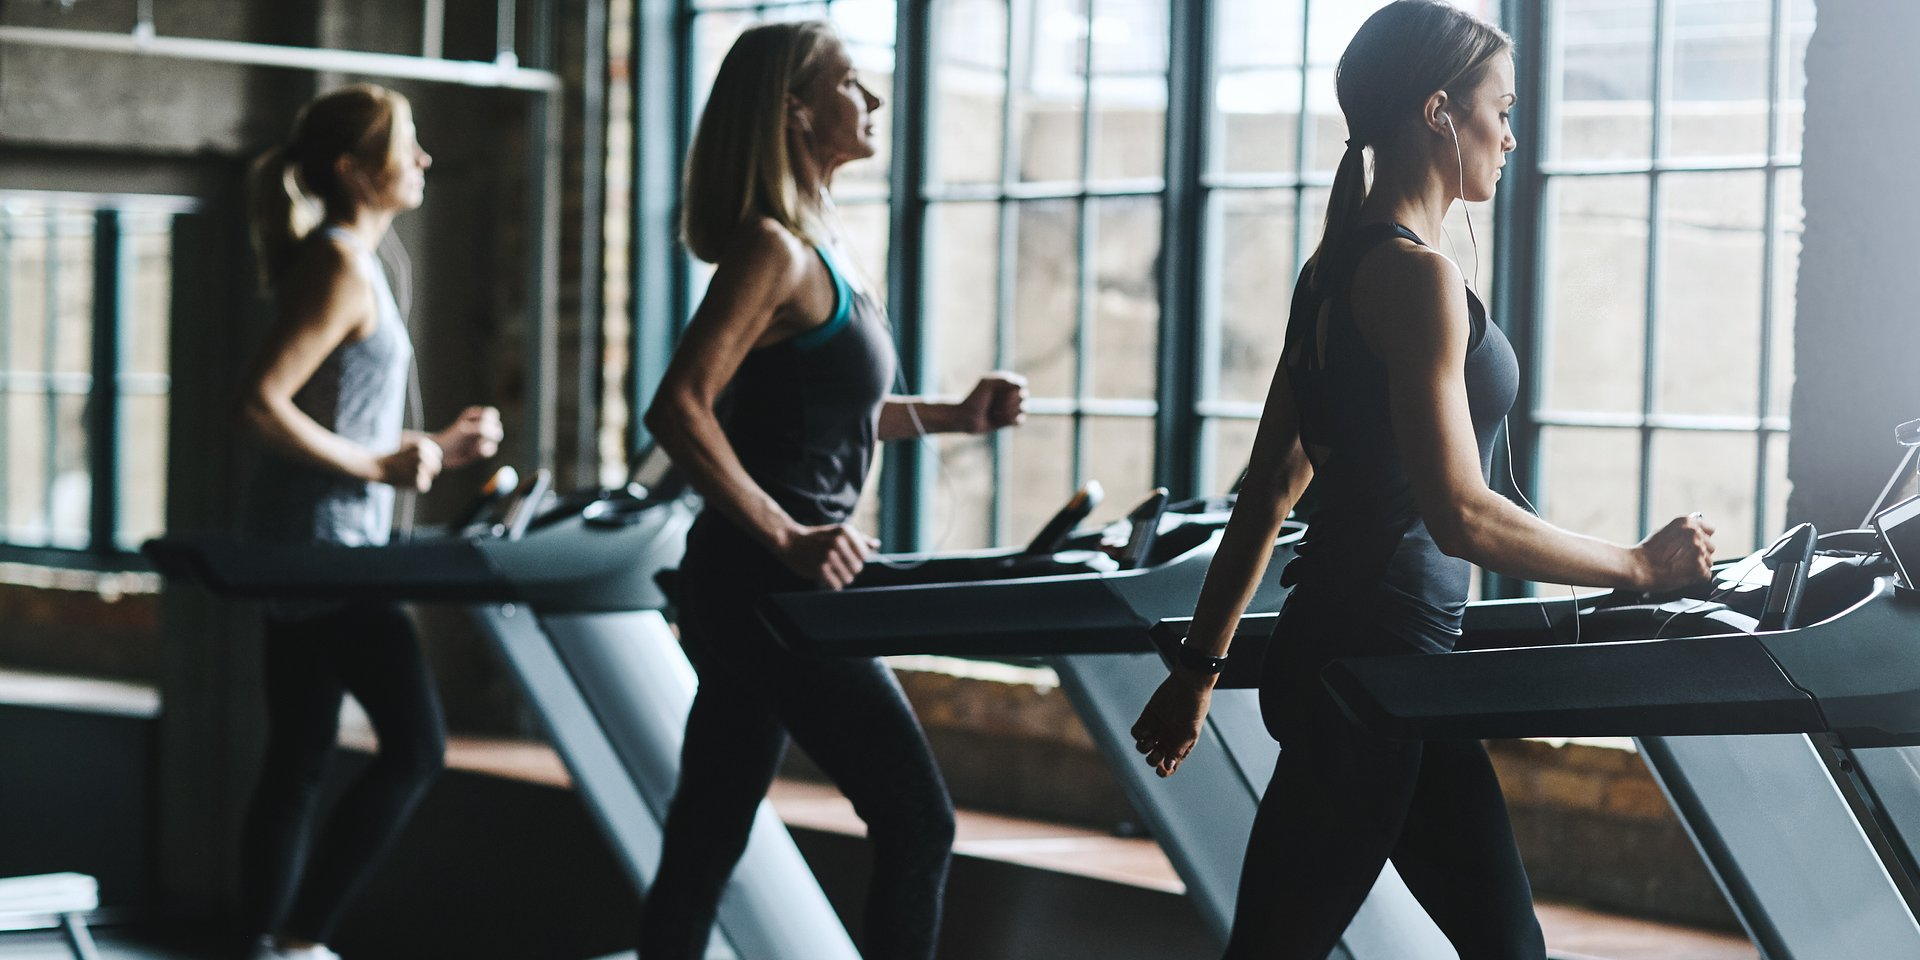 Study: Physical activity reduces the risk of severe COVID-19